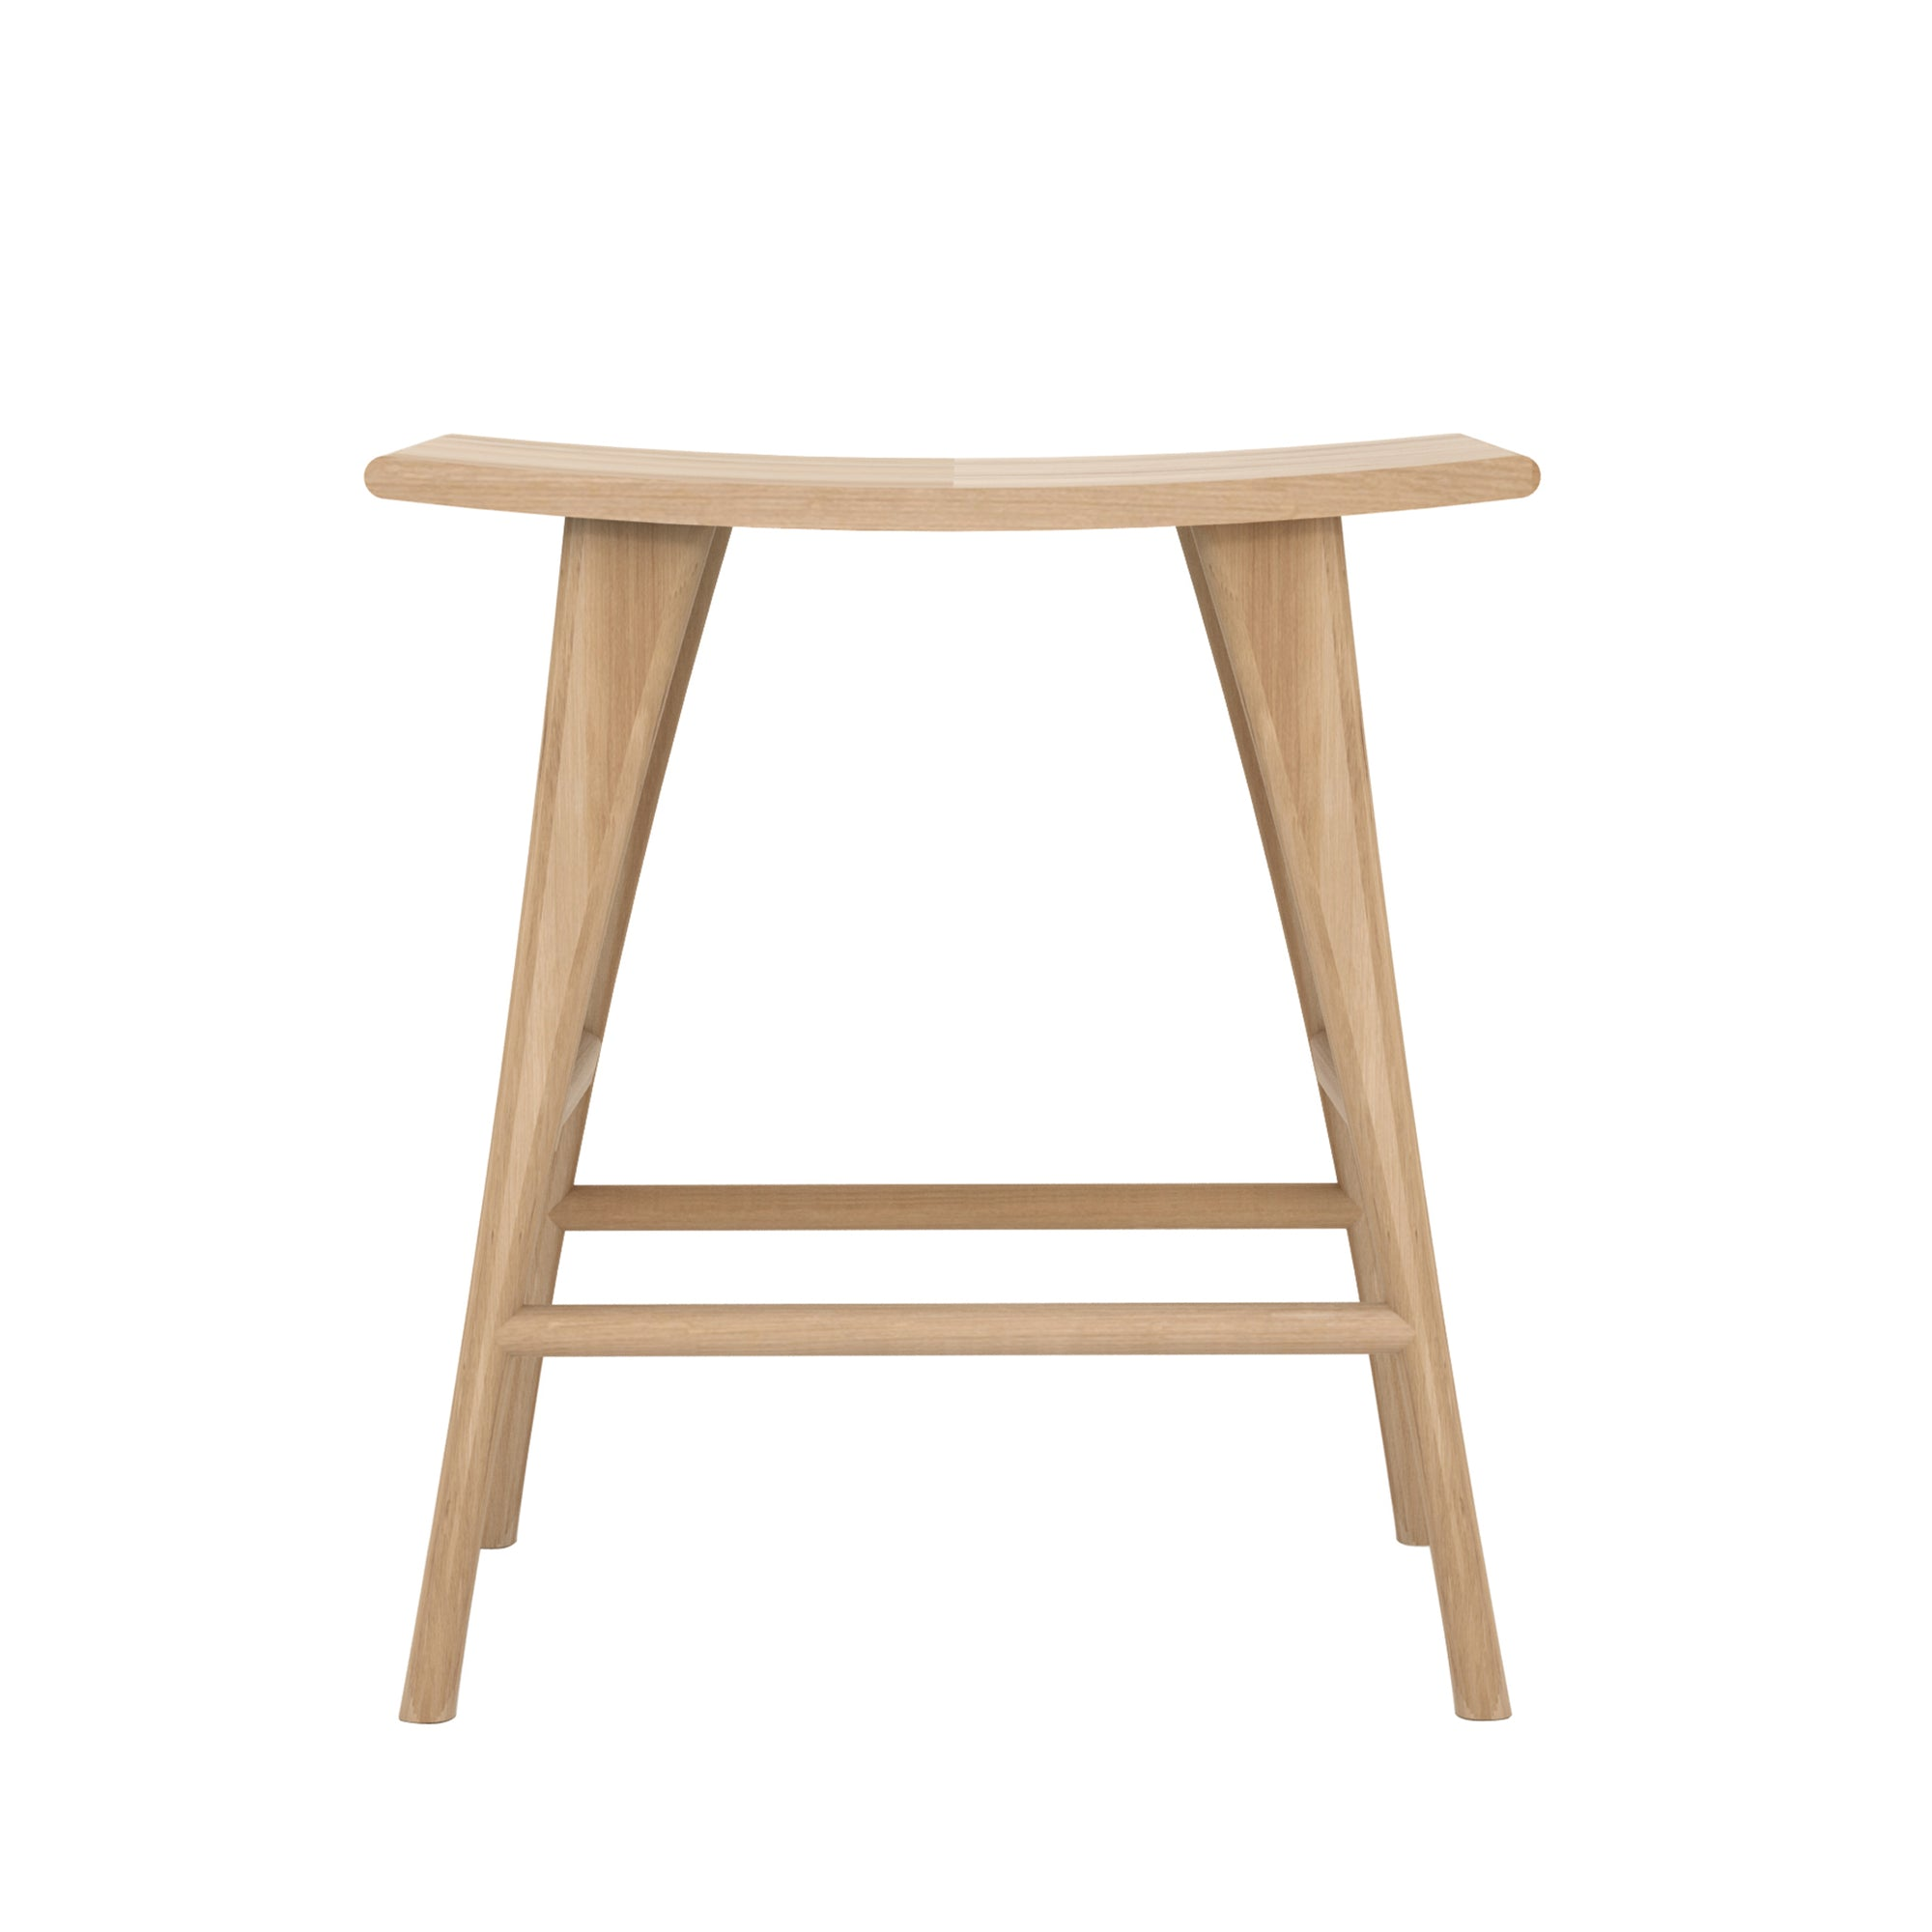 Oak Osso counter stool